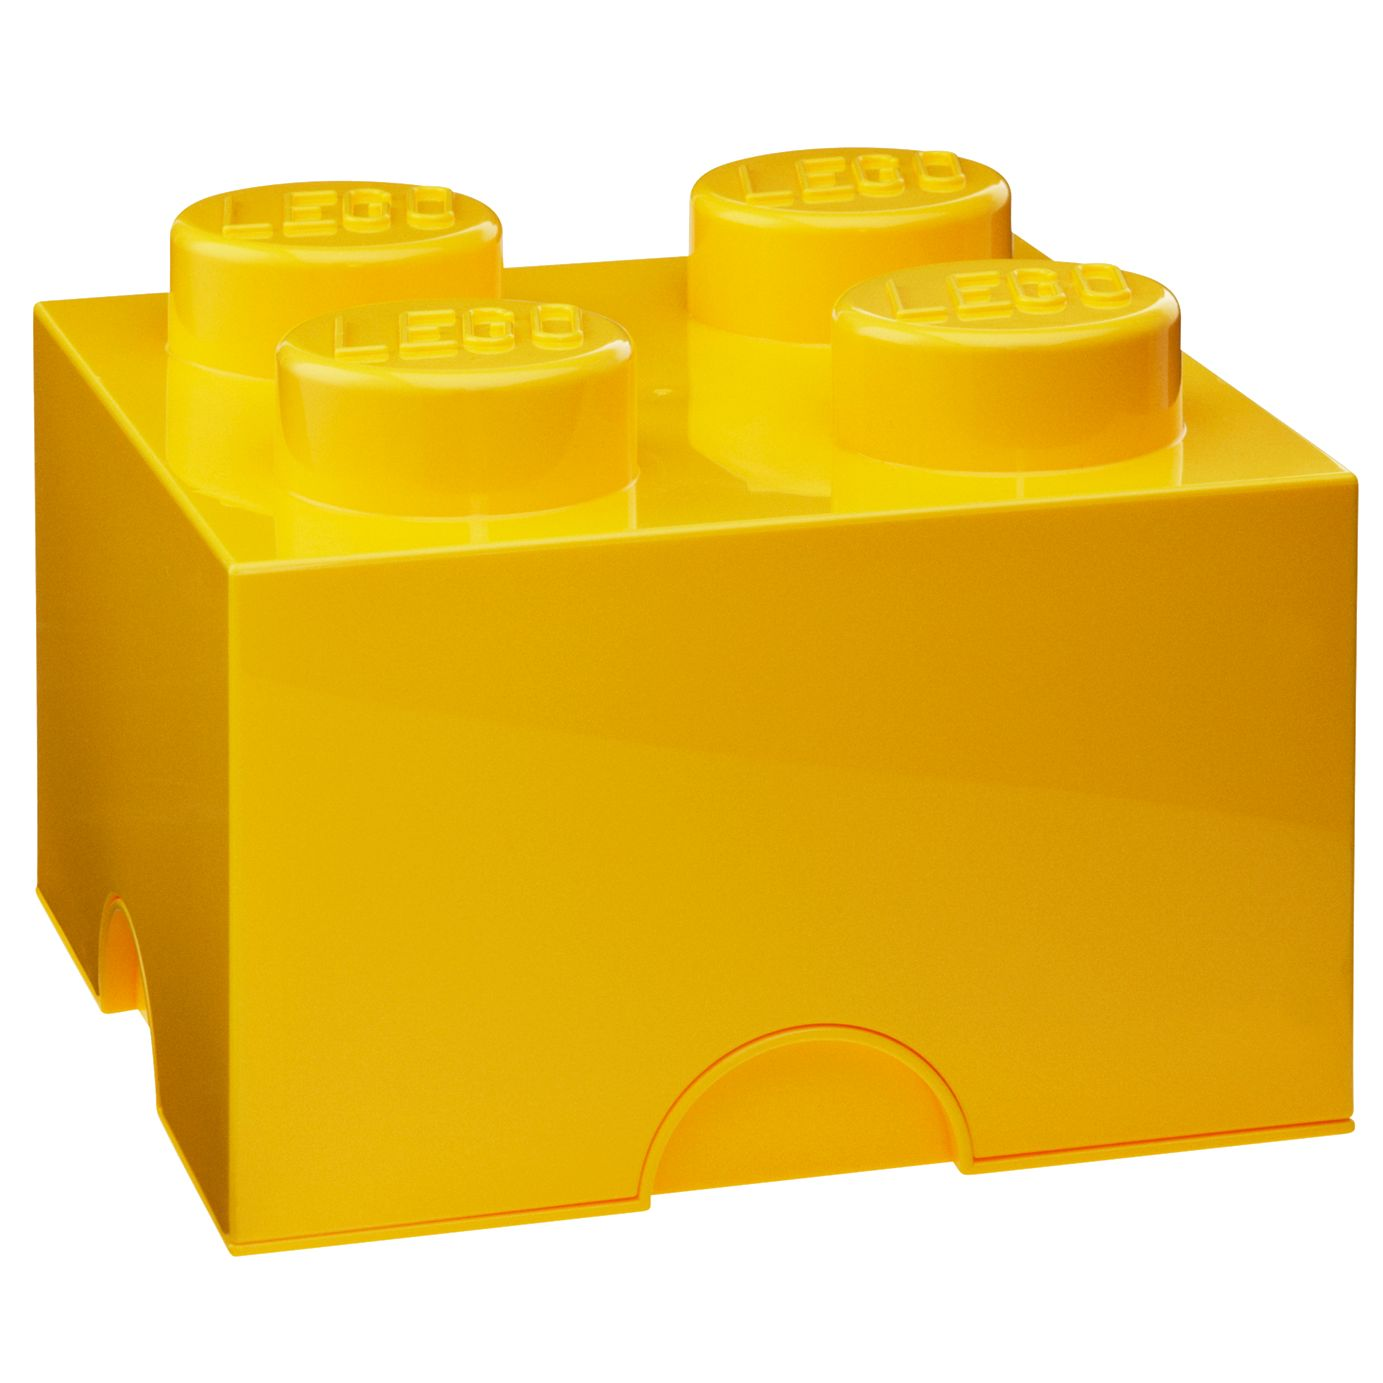 Lego 4 Stud Storage Brick, Yellow